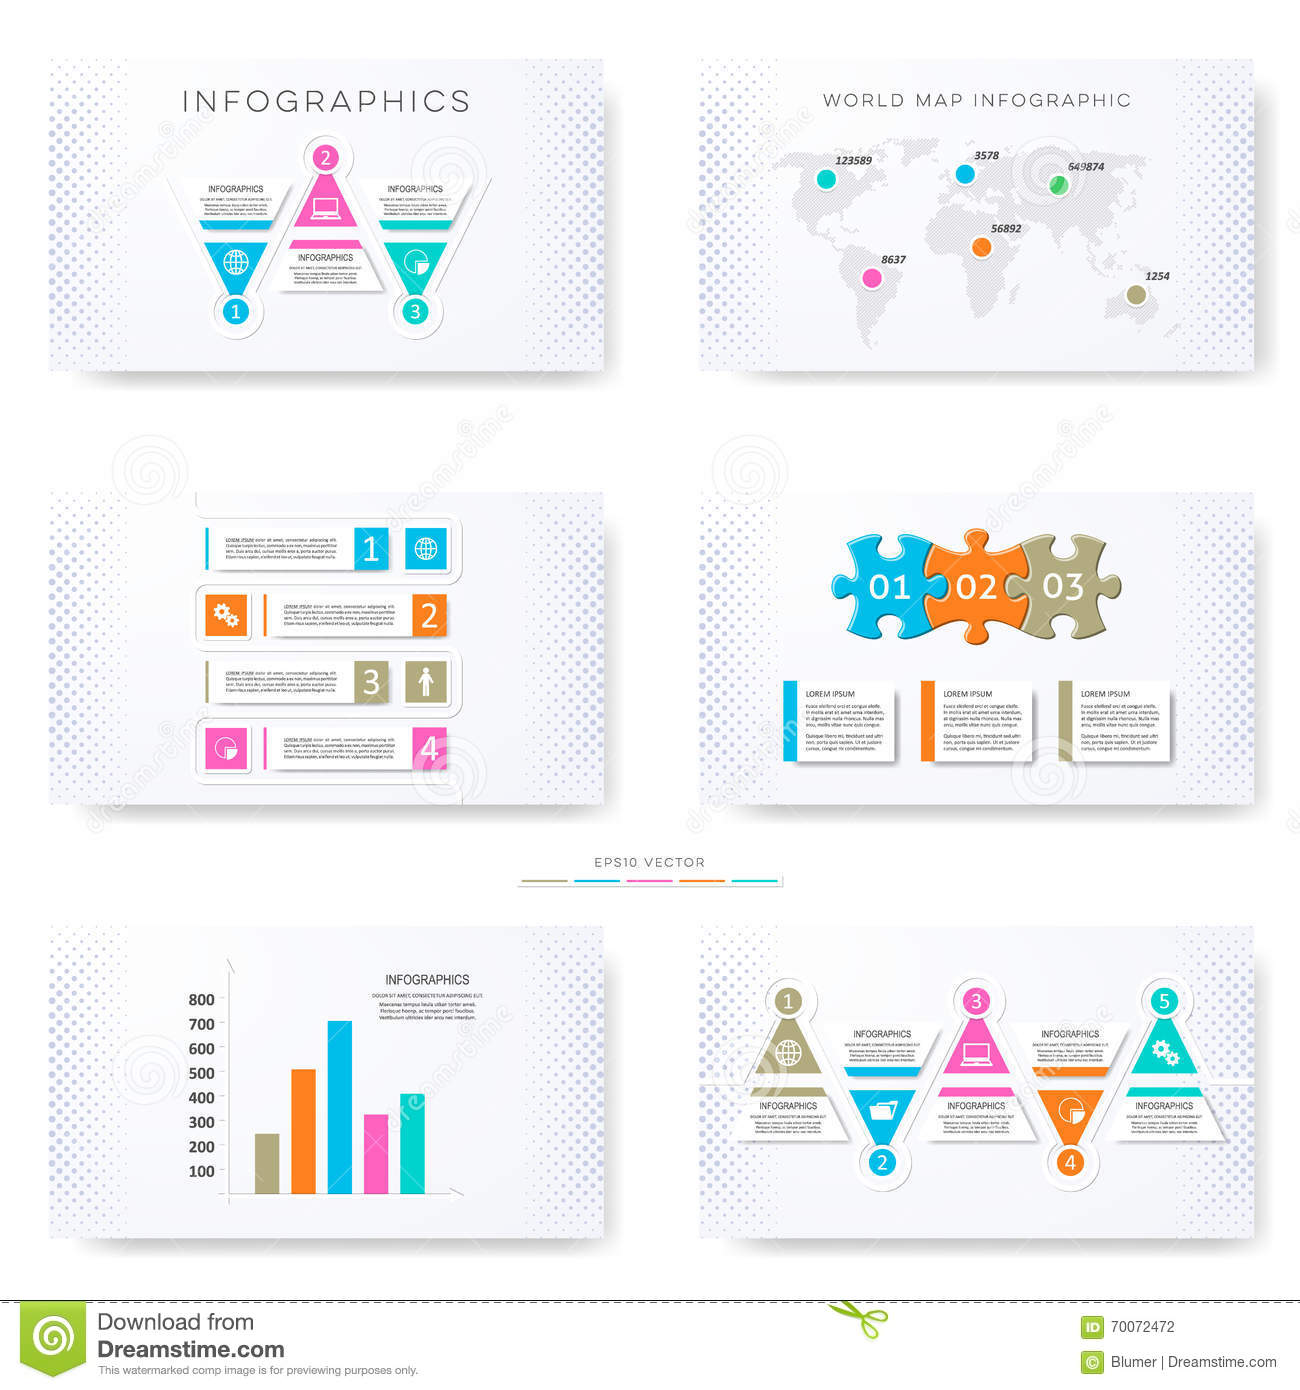 Infographic ppt template free download